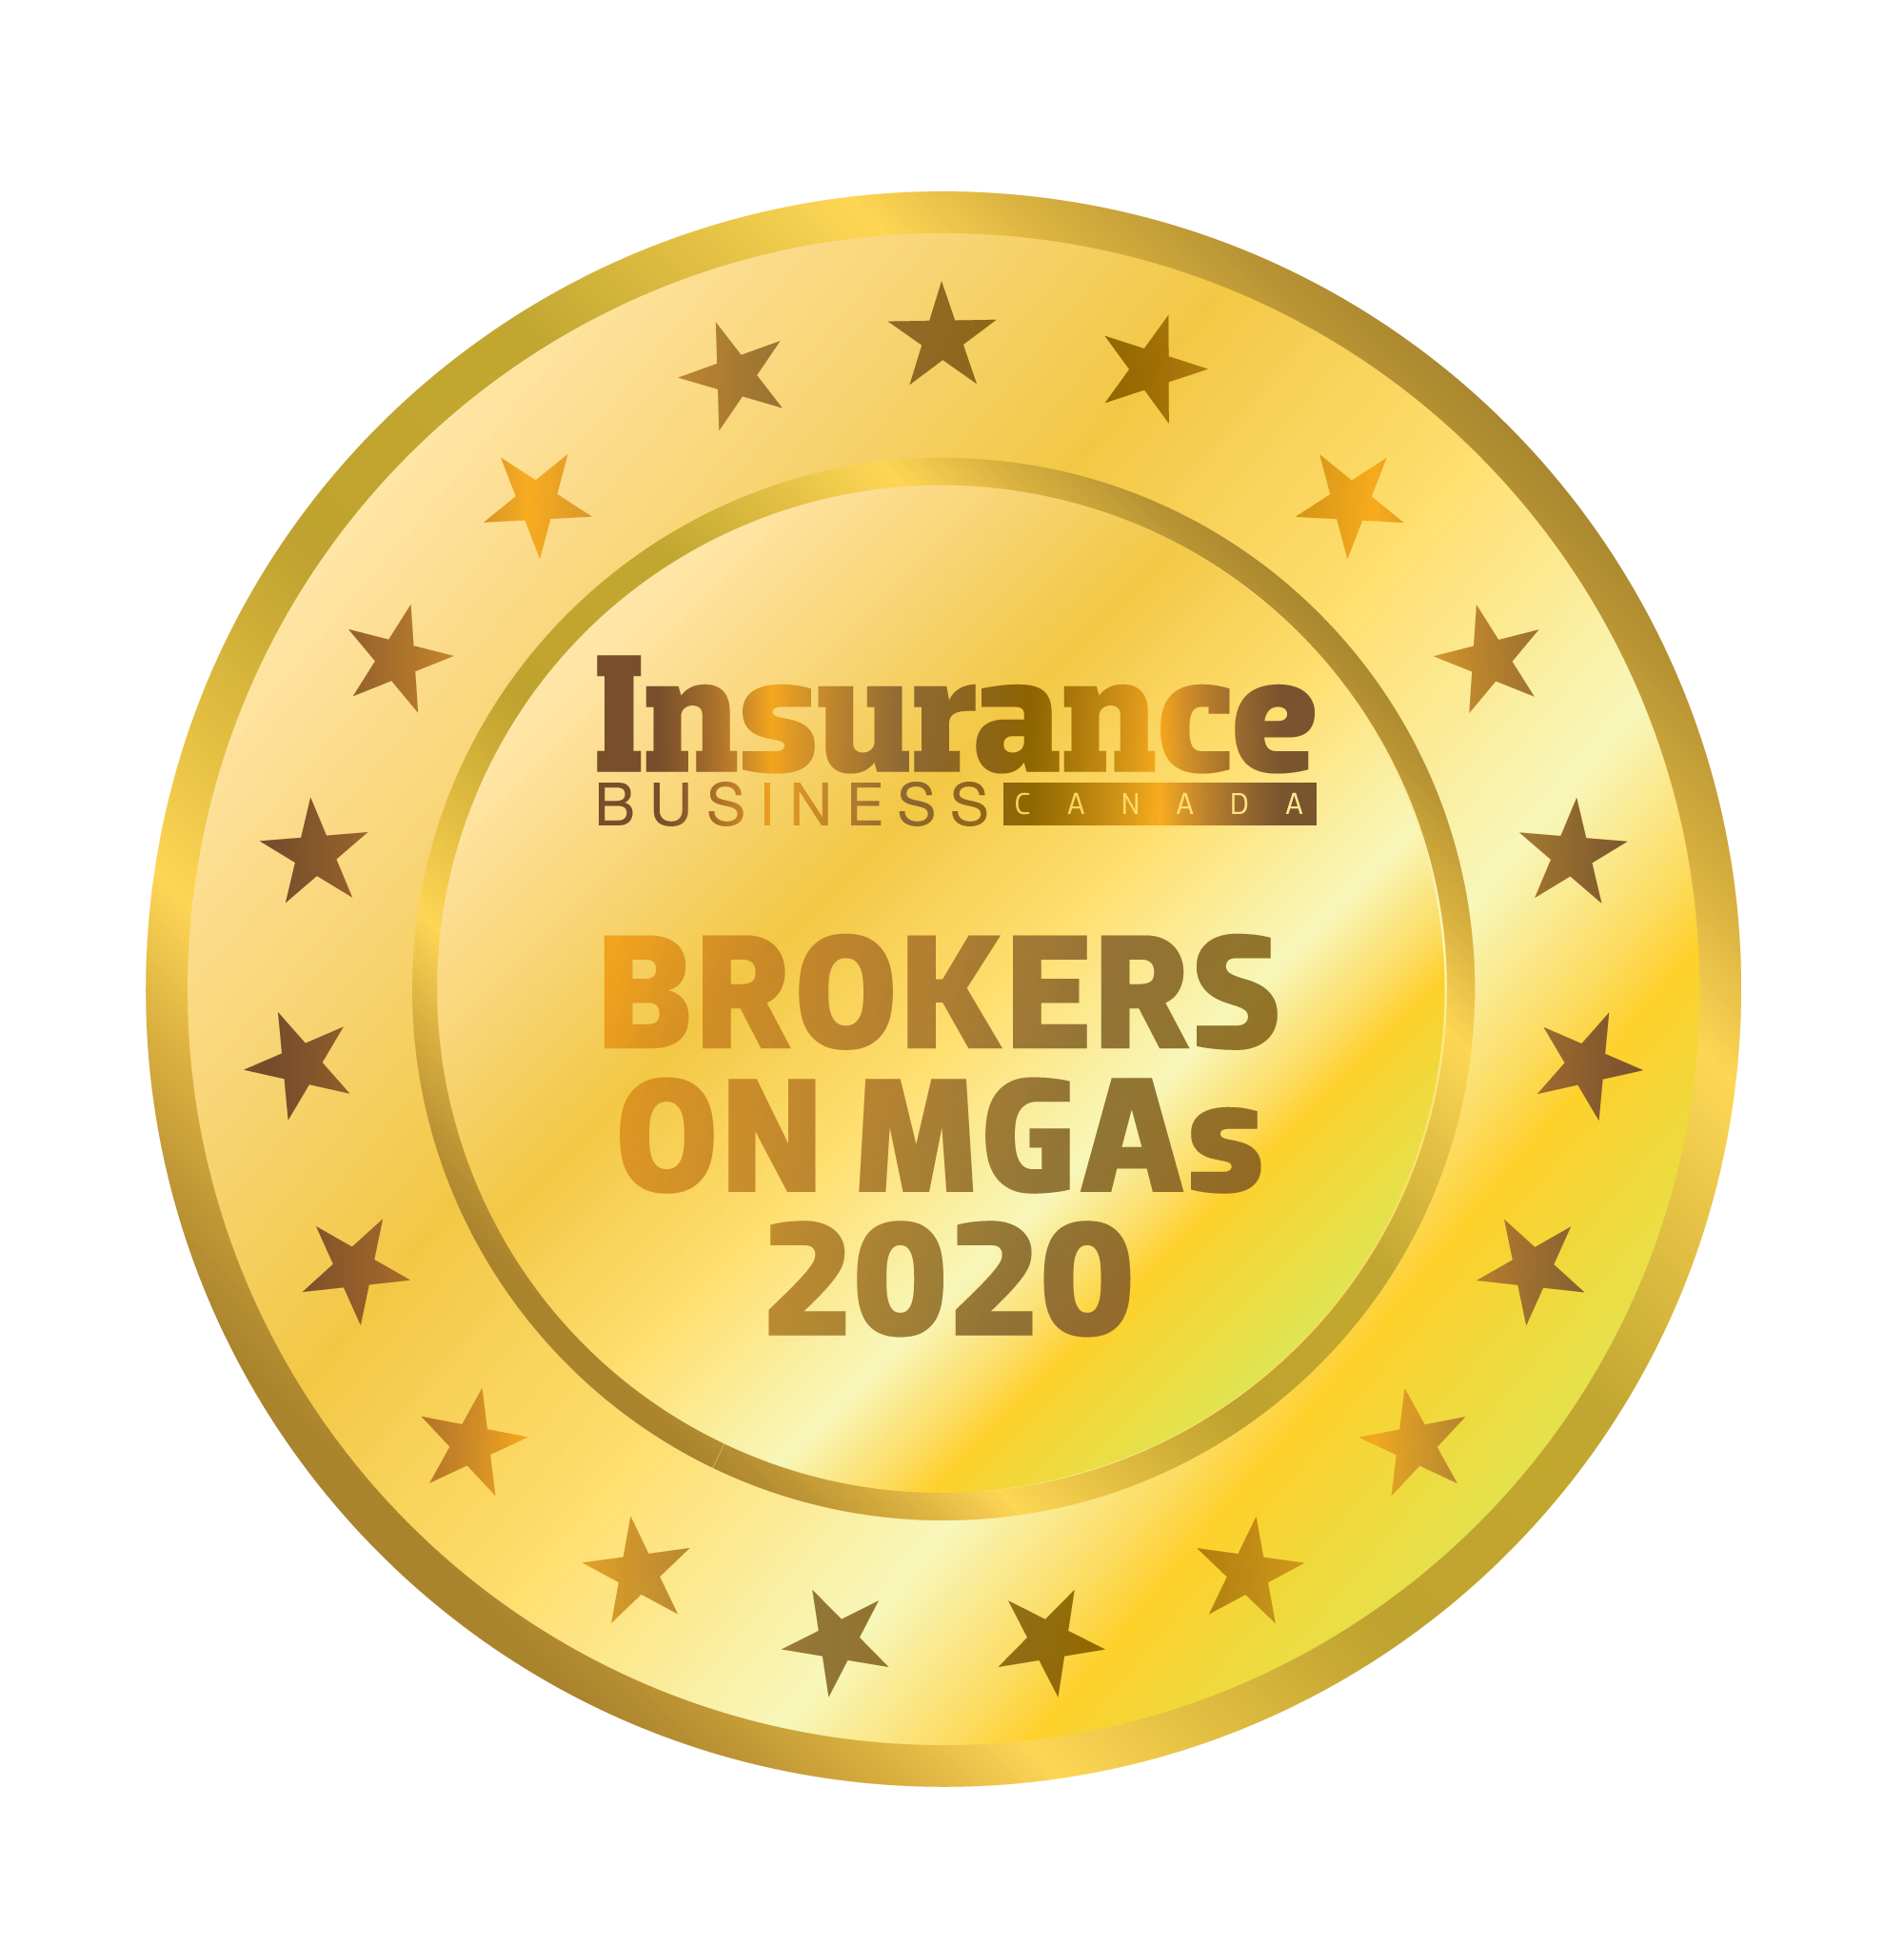 Brokers on MGAs 2020